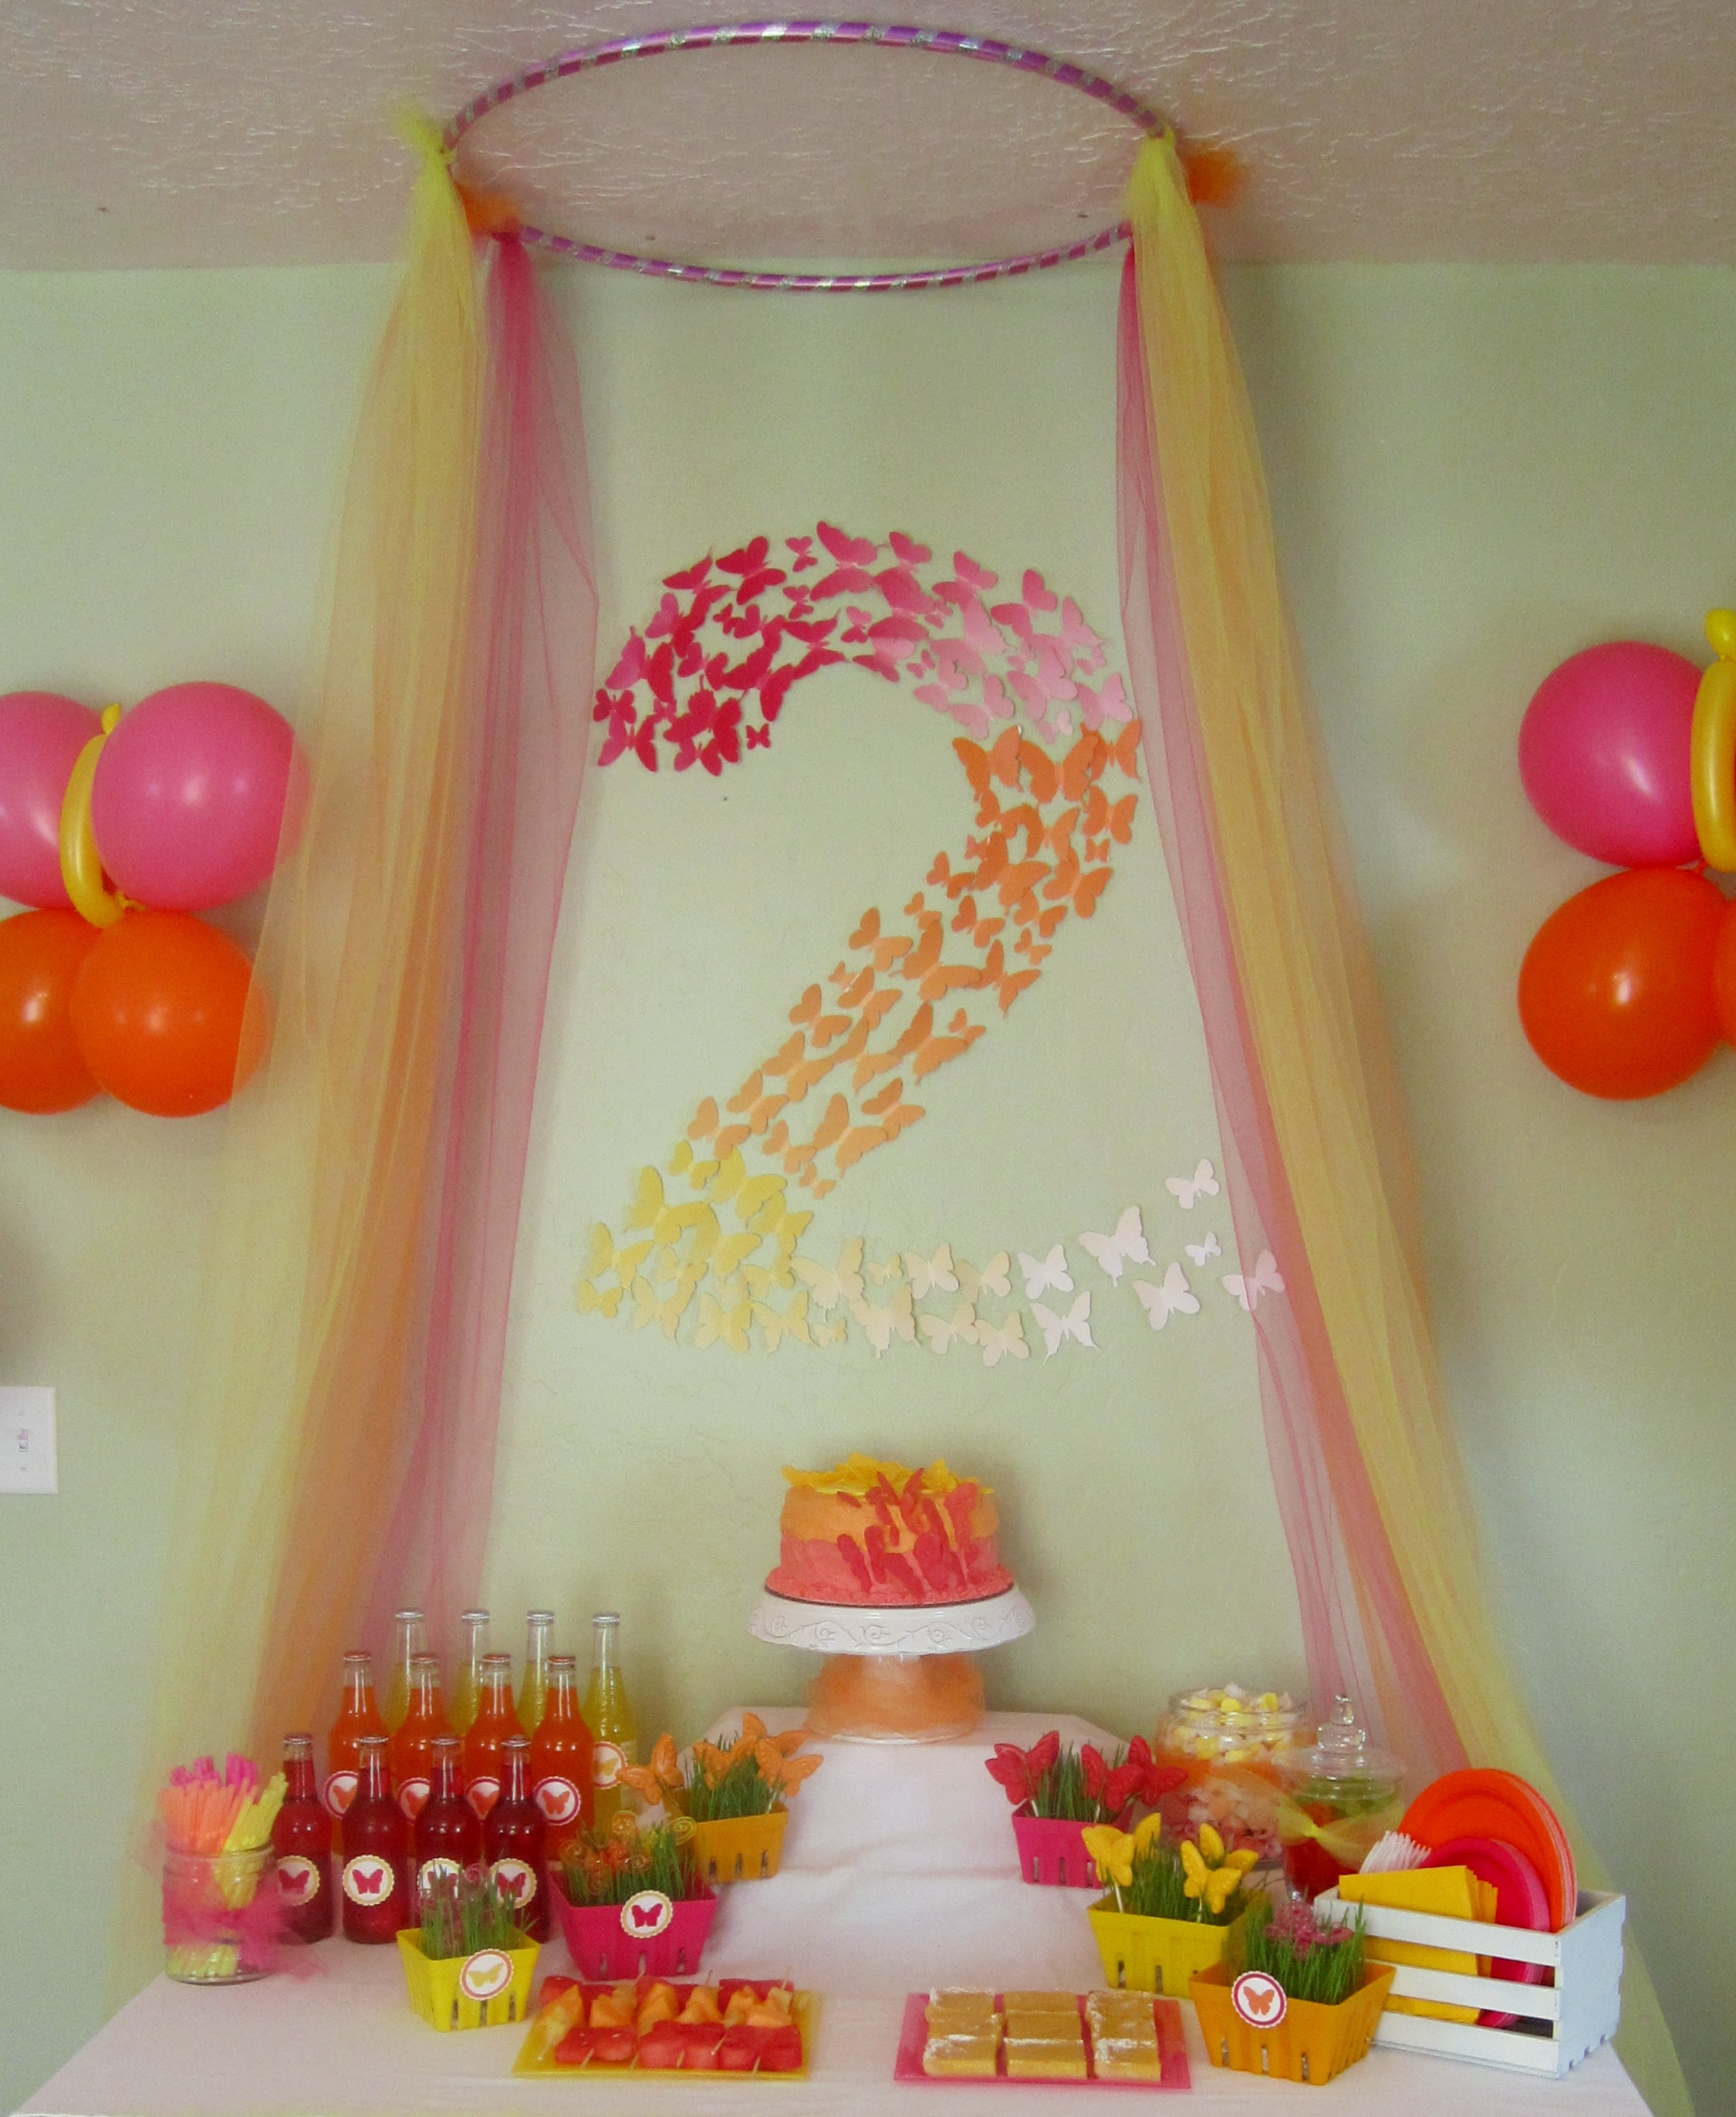 Simple birthday table decoration ideas - Butterfly Themed Party Decorations